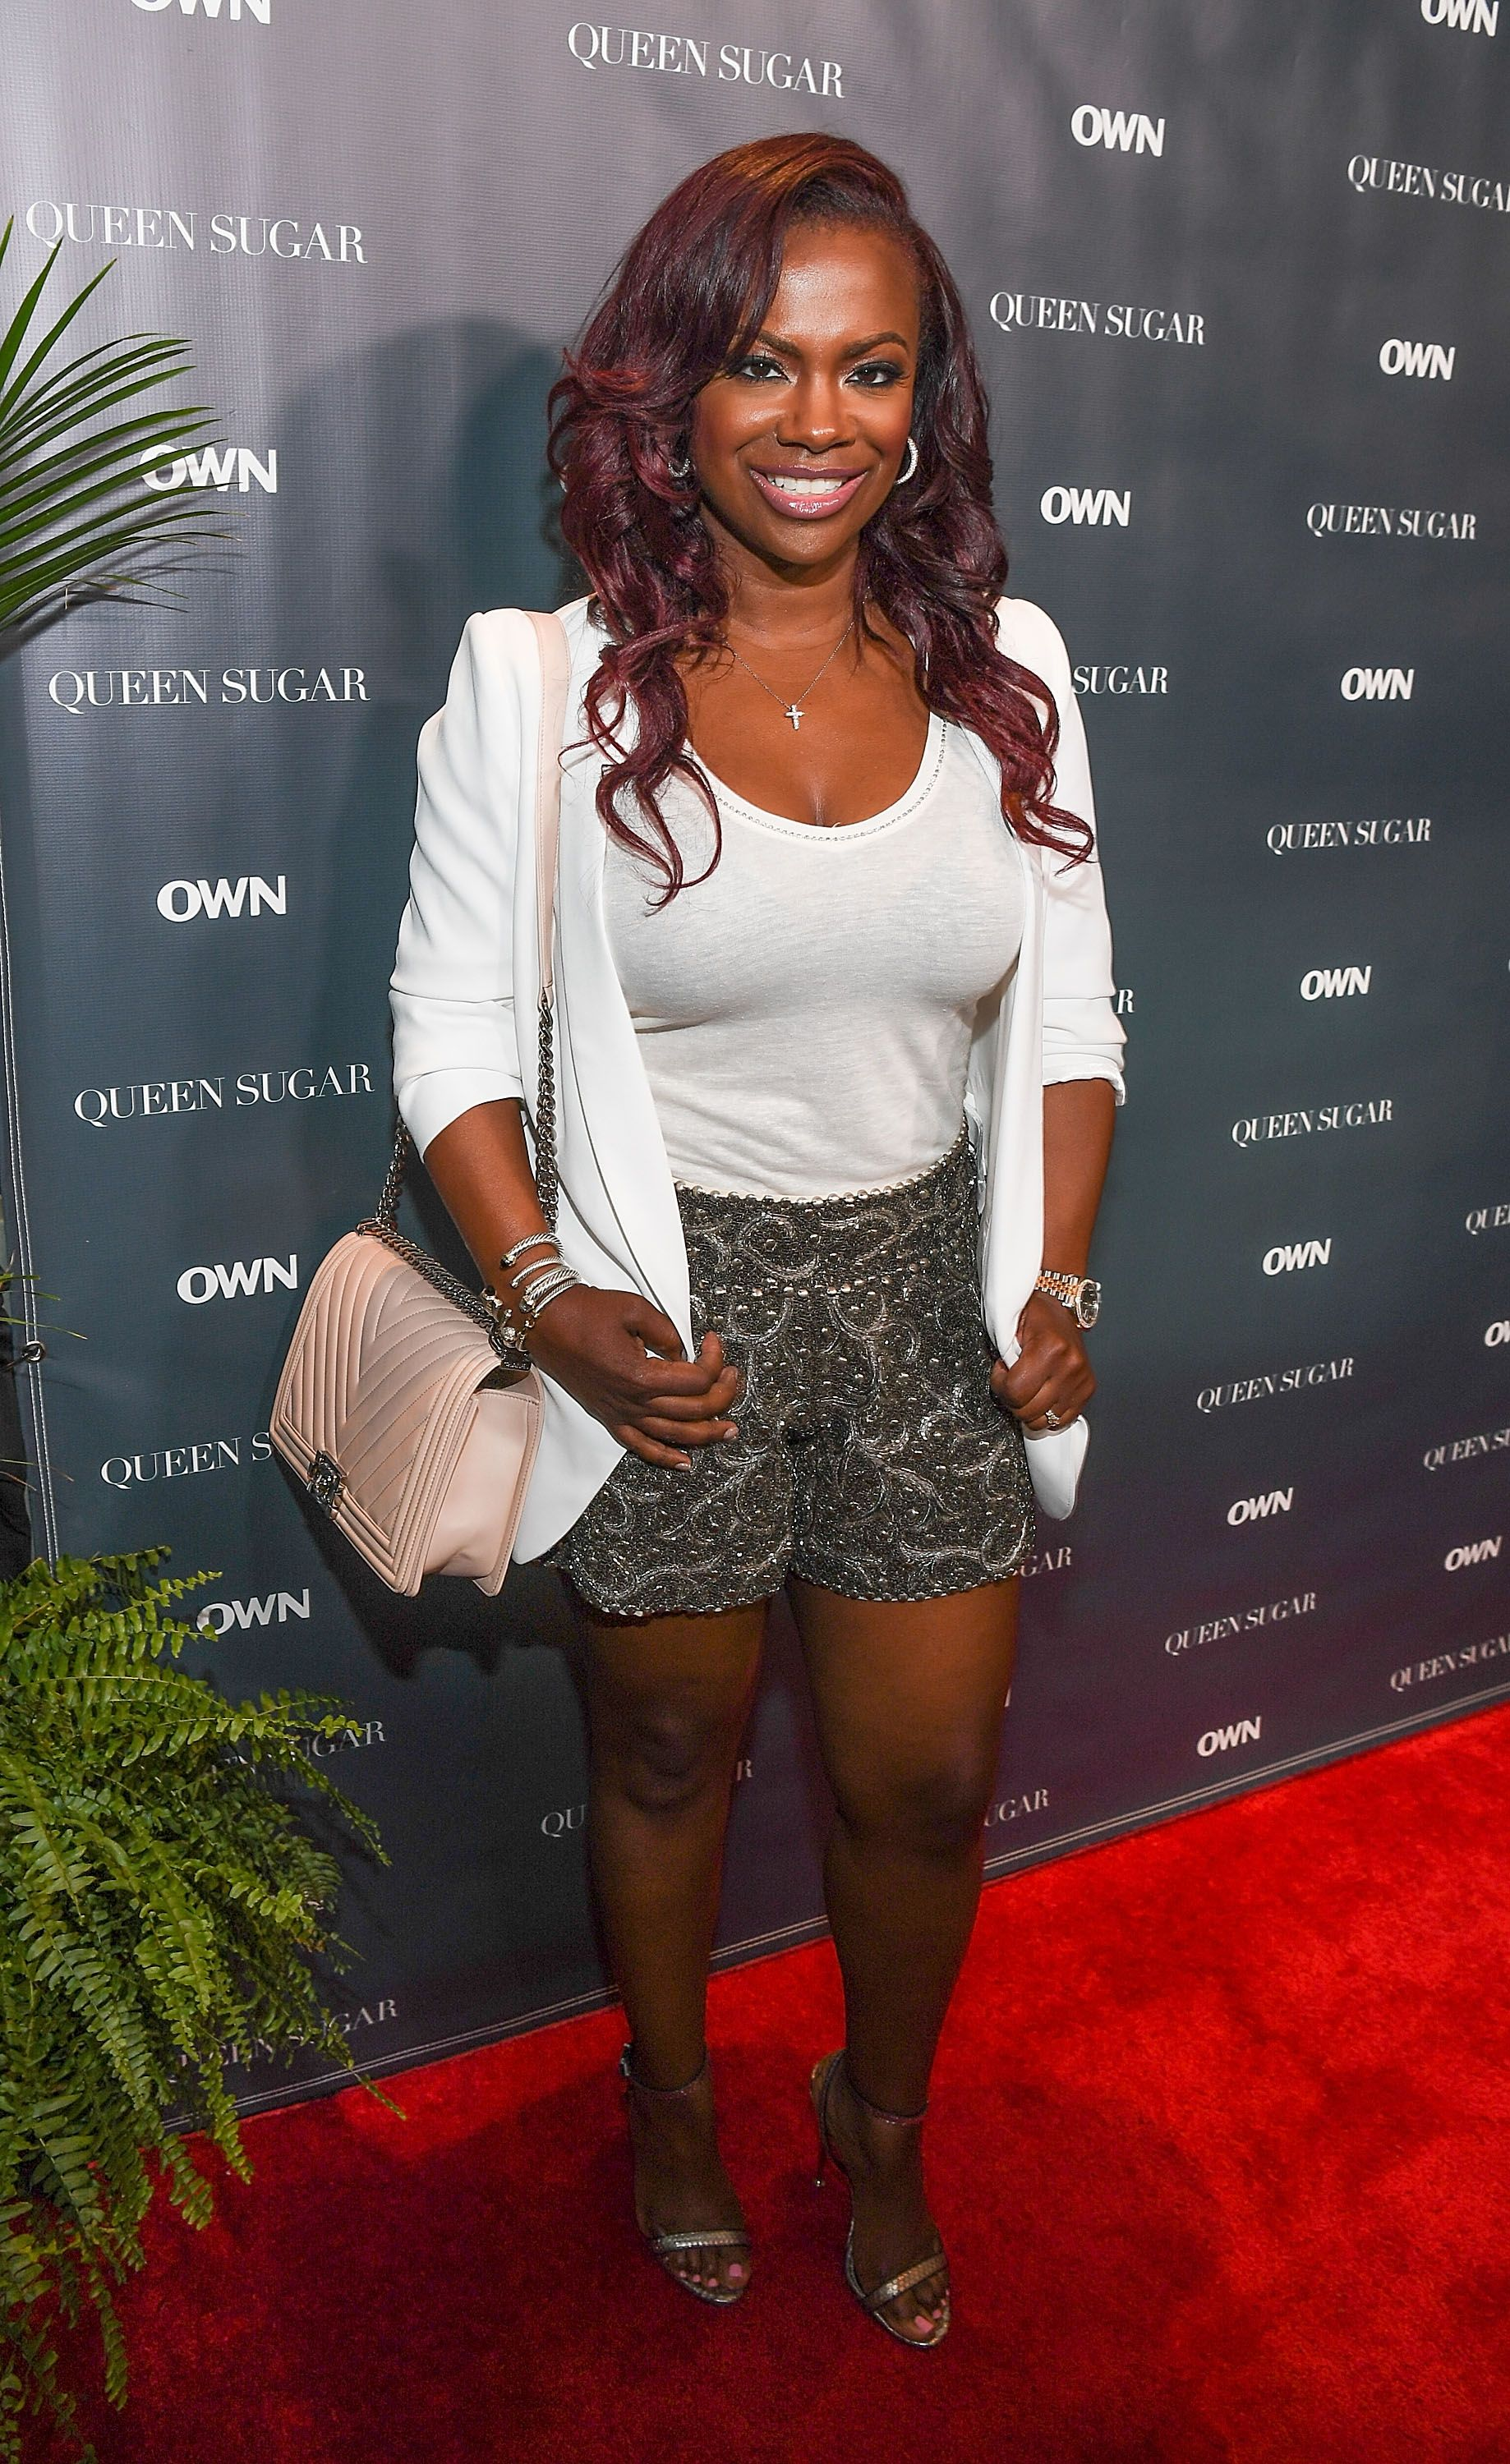 """On July 2, 2016 in New Orleans, Louisiana TV personality Kandi Burruss attends the """"Queen Sugar"""" cocktail reception at Legacy Kitchen   Photo: Getty Images/Paras Griffin"""